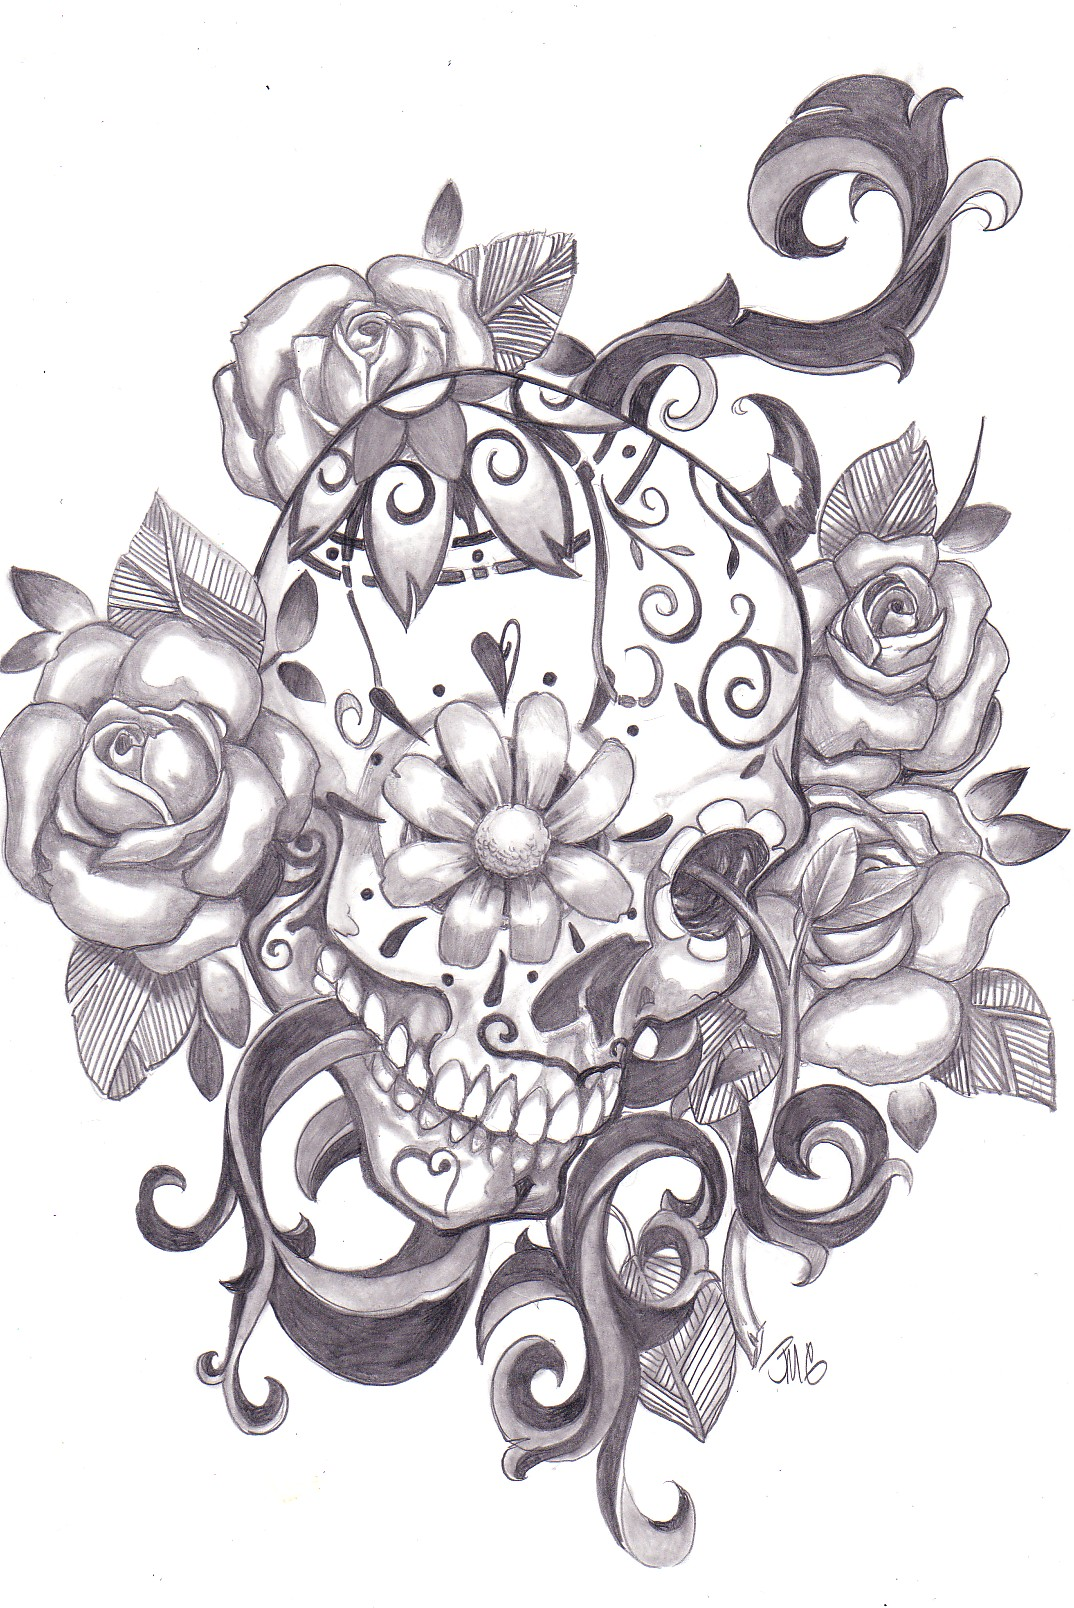 Sugar Skull Designs Inspiration From Mexican Folk Art Ideas And Designs